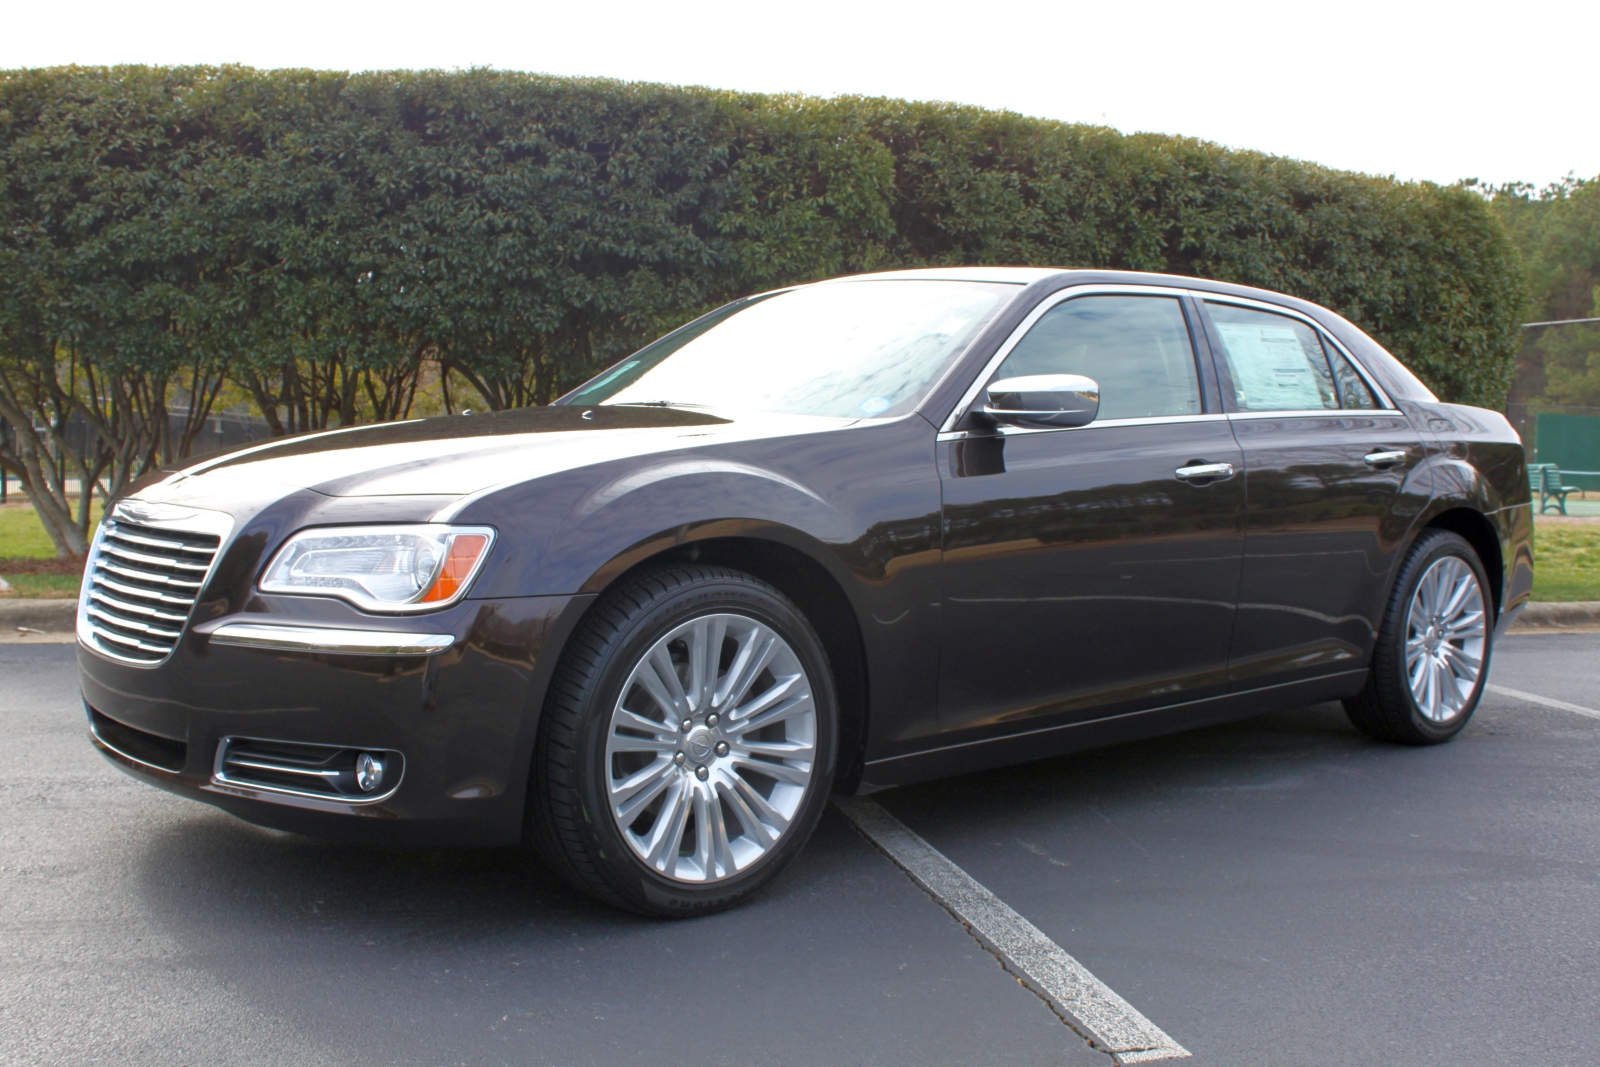 2012 Chrysler 300 Limited Test Drive Unapologetically